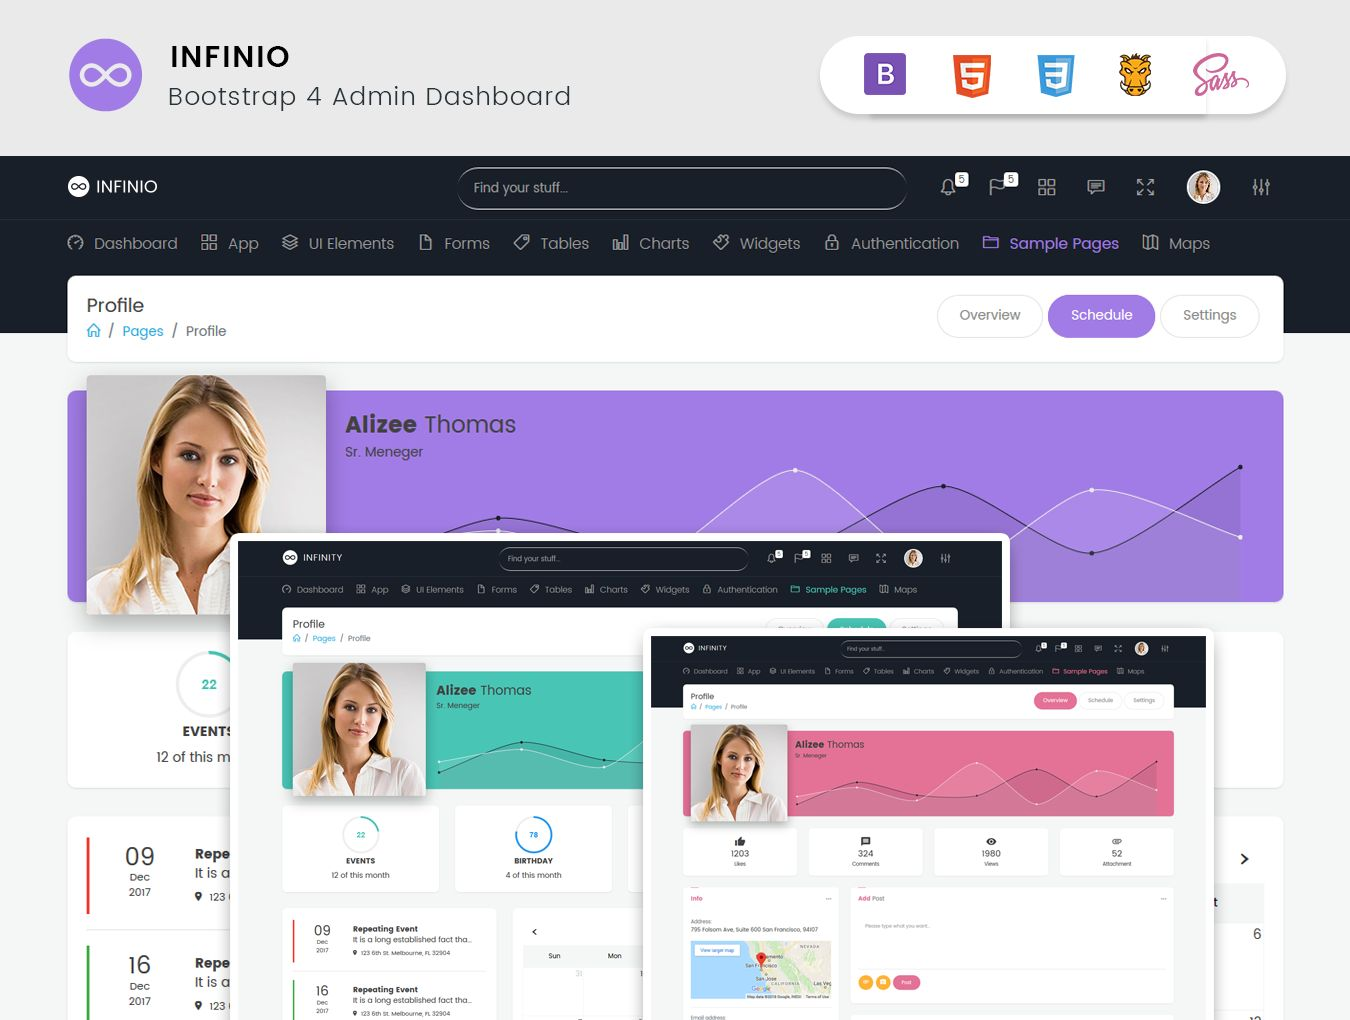 InfiniO - Bootstrap 4 Admin Dashboard Template  Screenshot 8